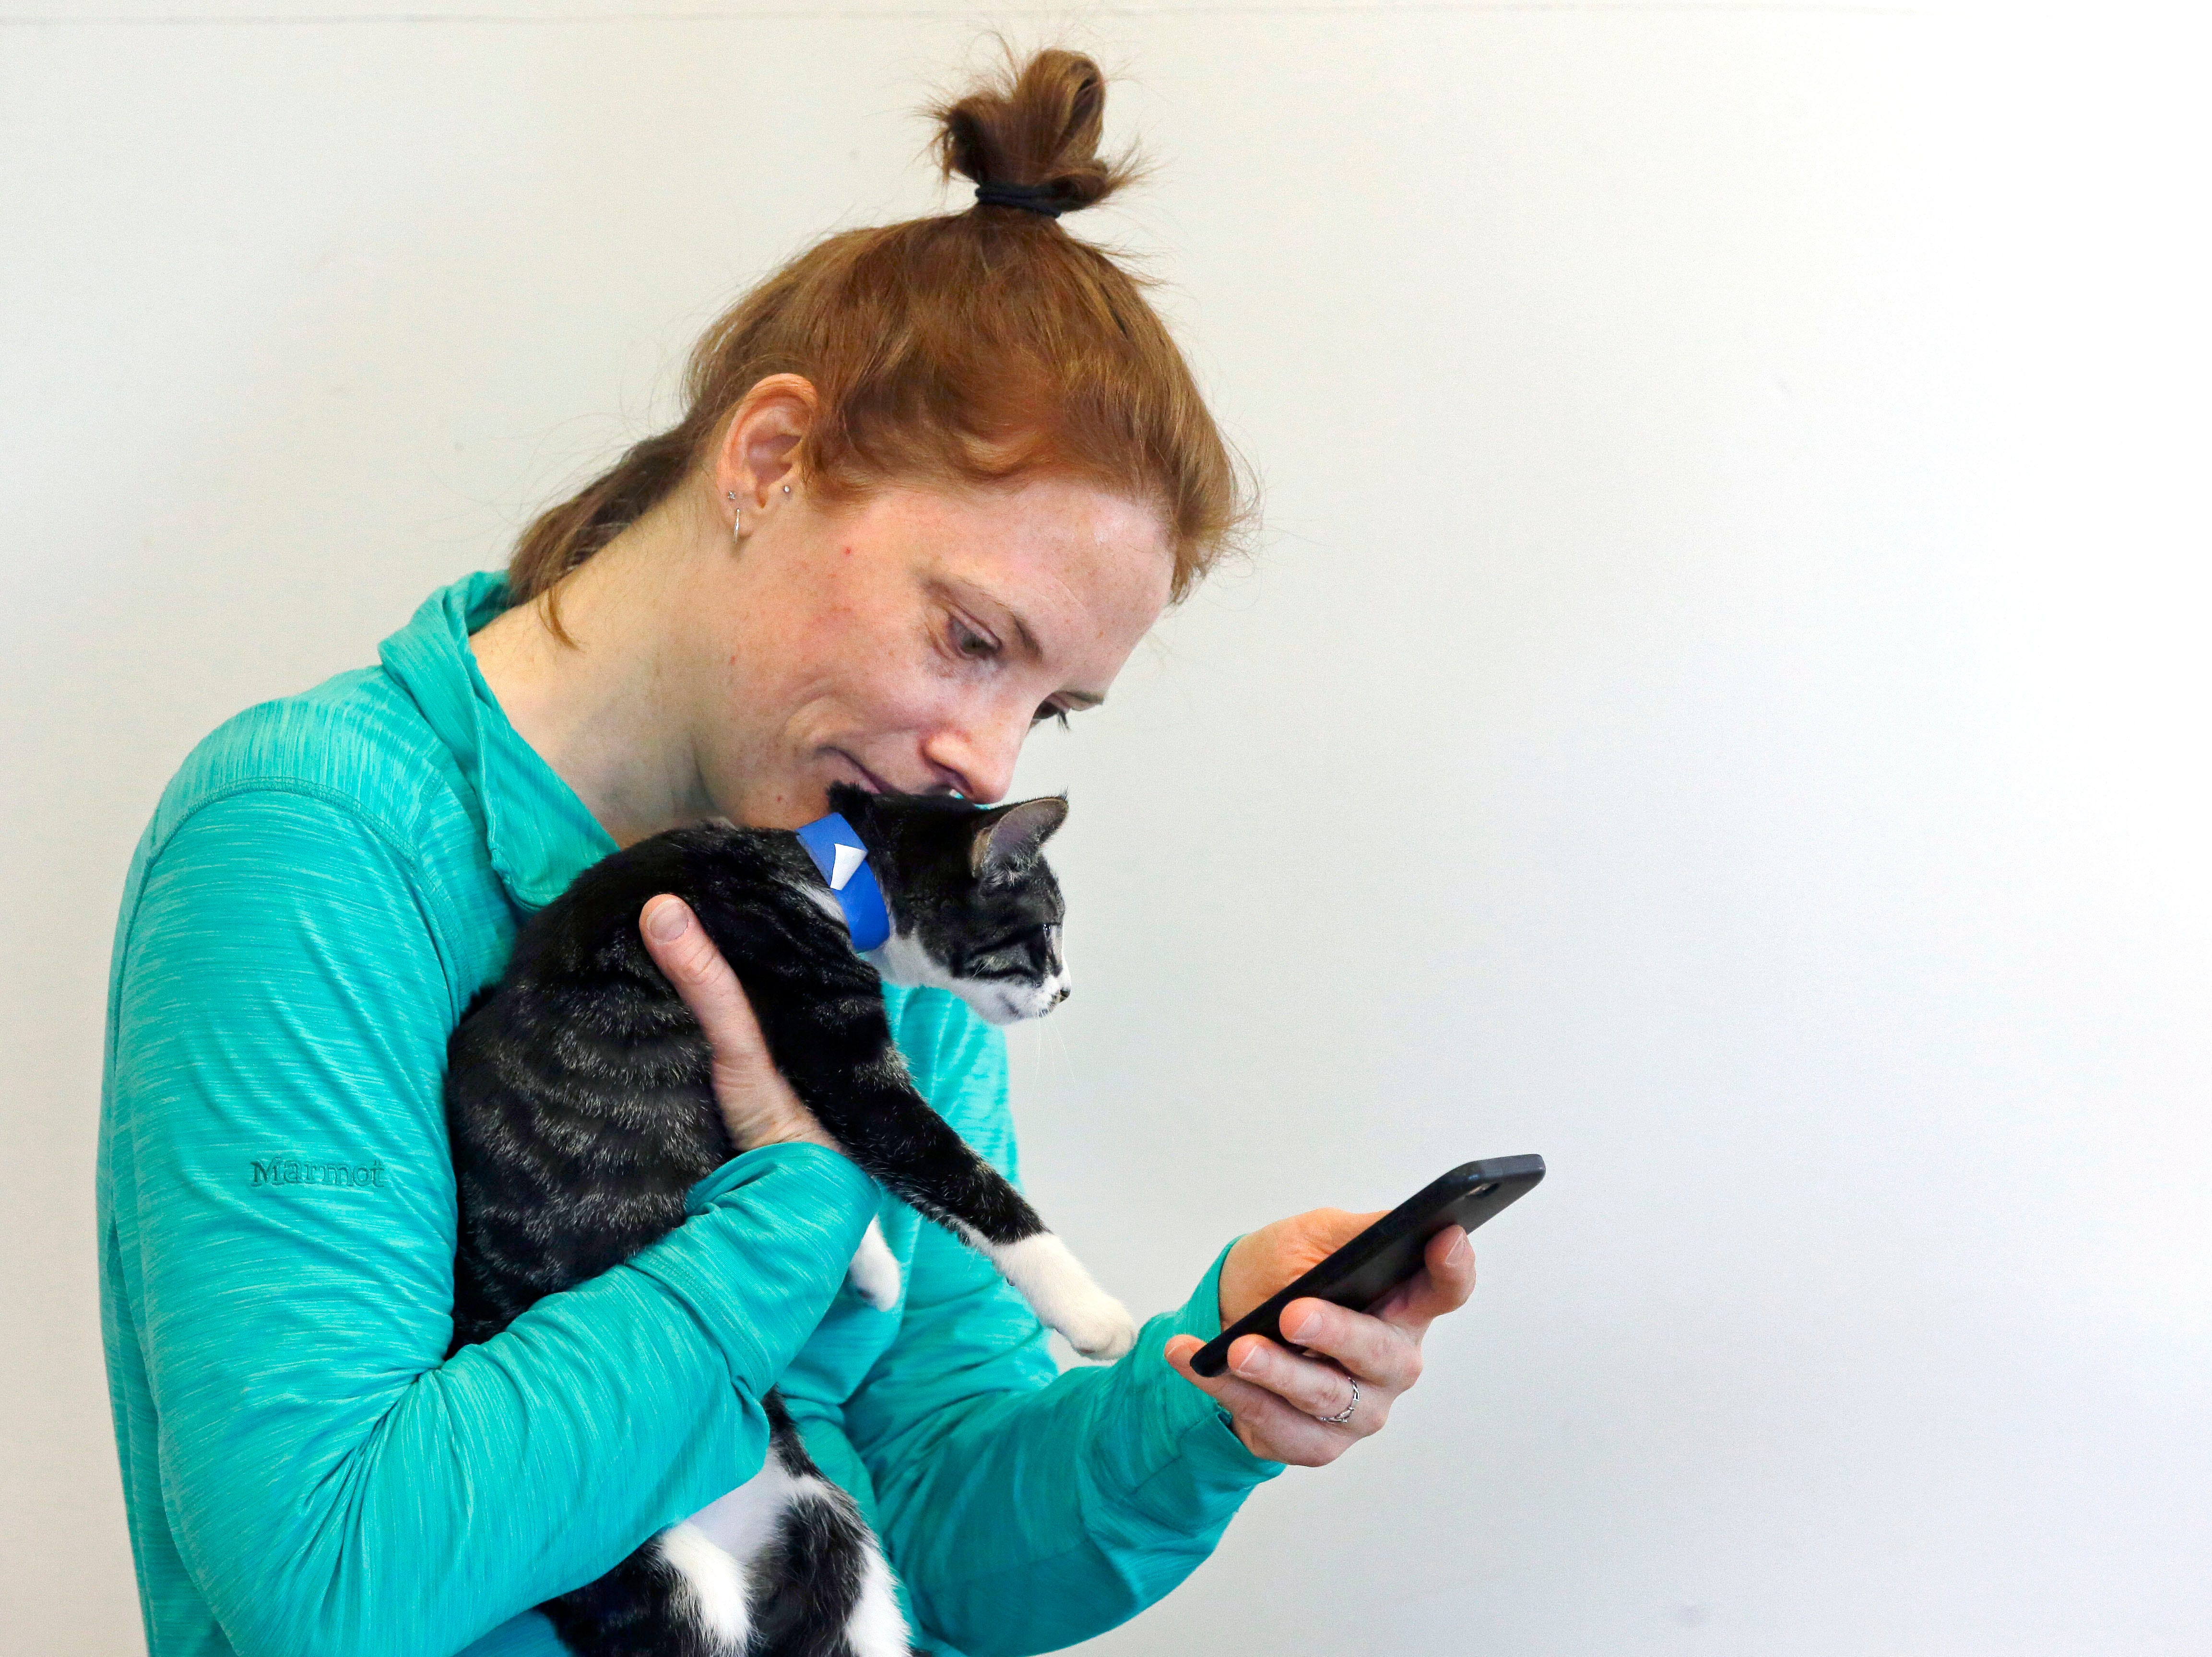 Shawn Murphy gets a selfie with a kitten as the Fox Valley Humane Association and Grace Under Fire Yoga bring together adoptable kittens and yoga class for Kitten Yoga on Saturday, Oct. 13, 2018, at the Fox Valley Humane Association in Appleton, Wis.